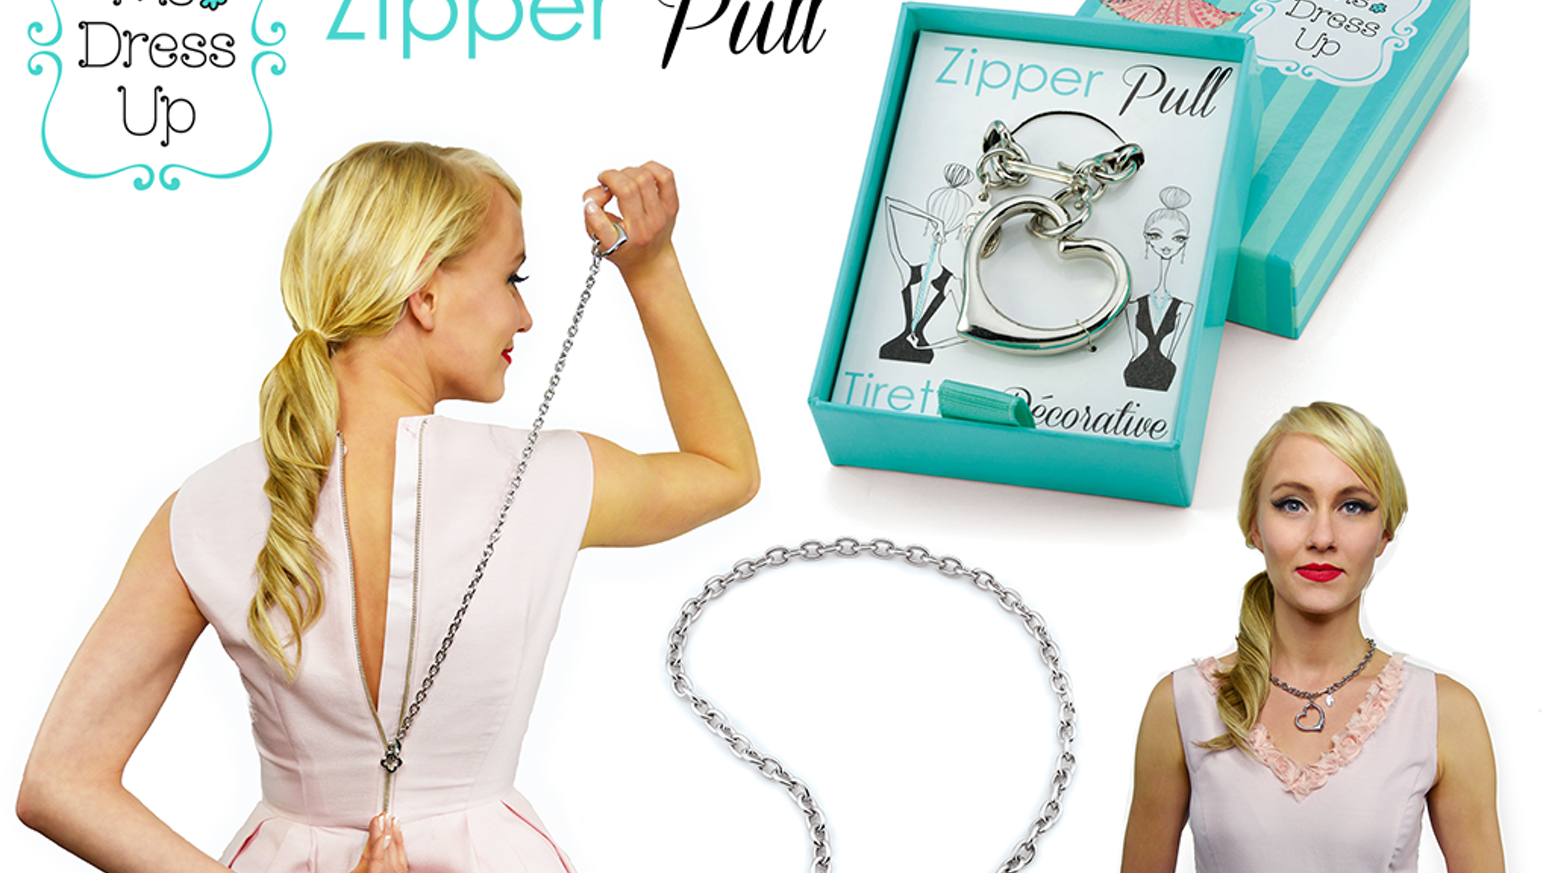 Zipper Pull: The Necklace That Zips You Up  by Ms  Dress Up